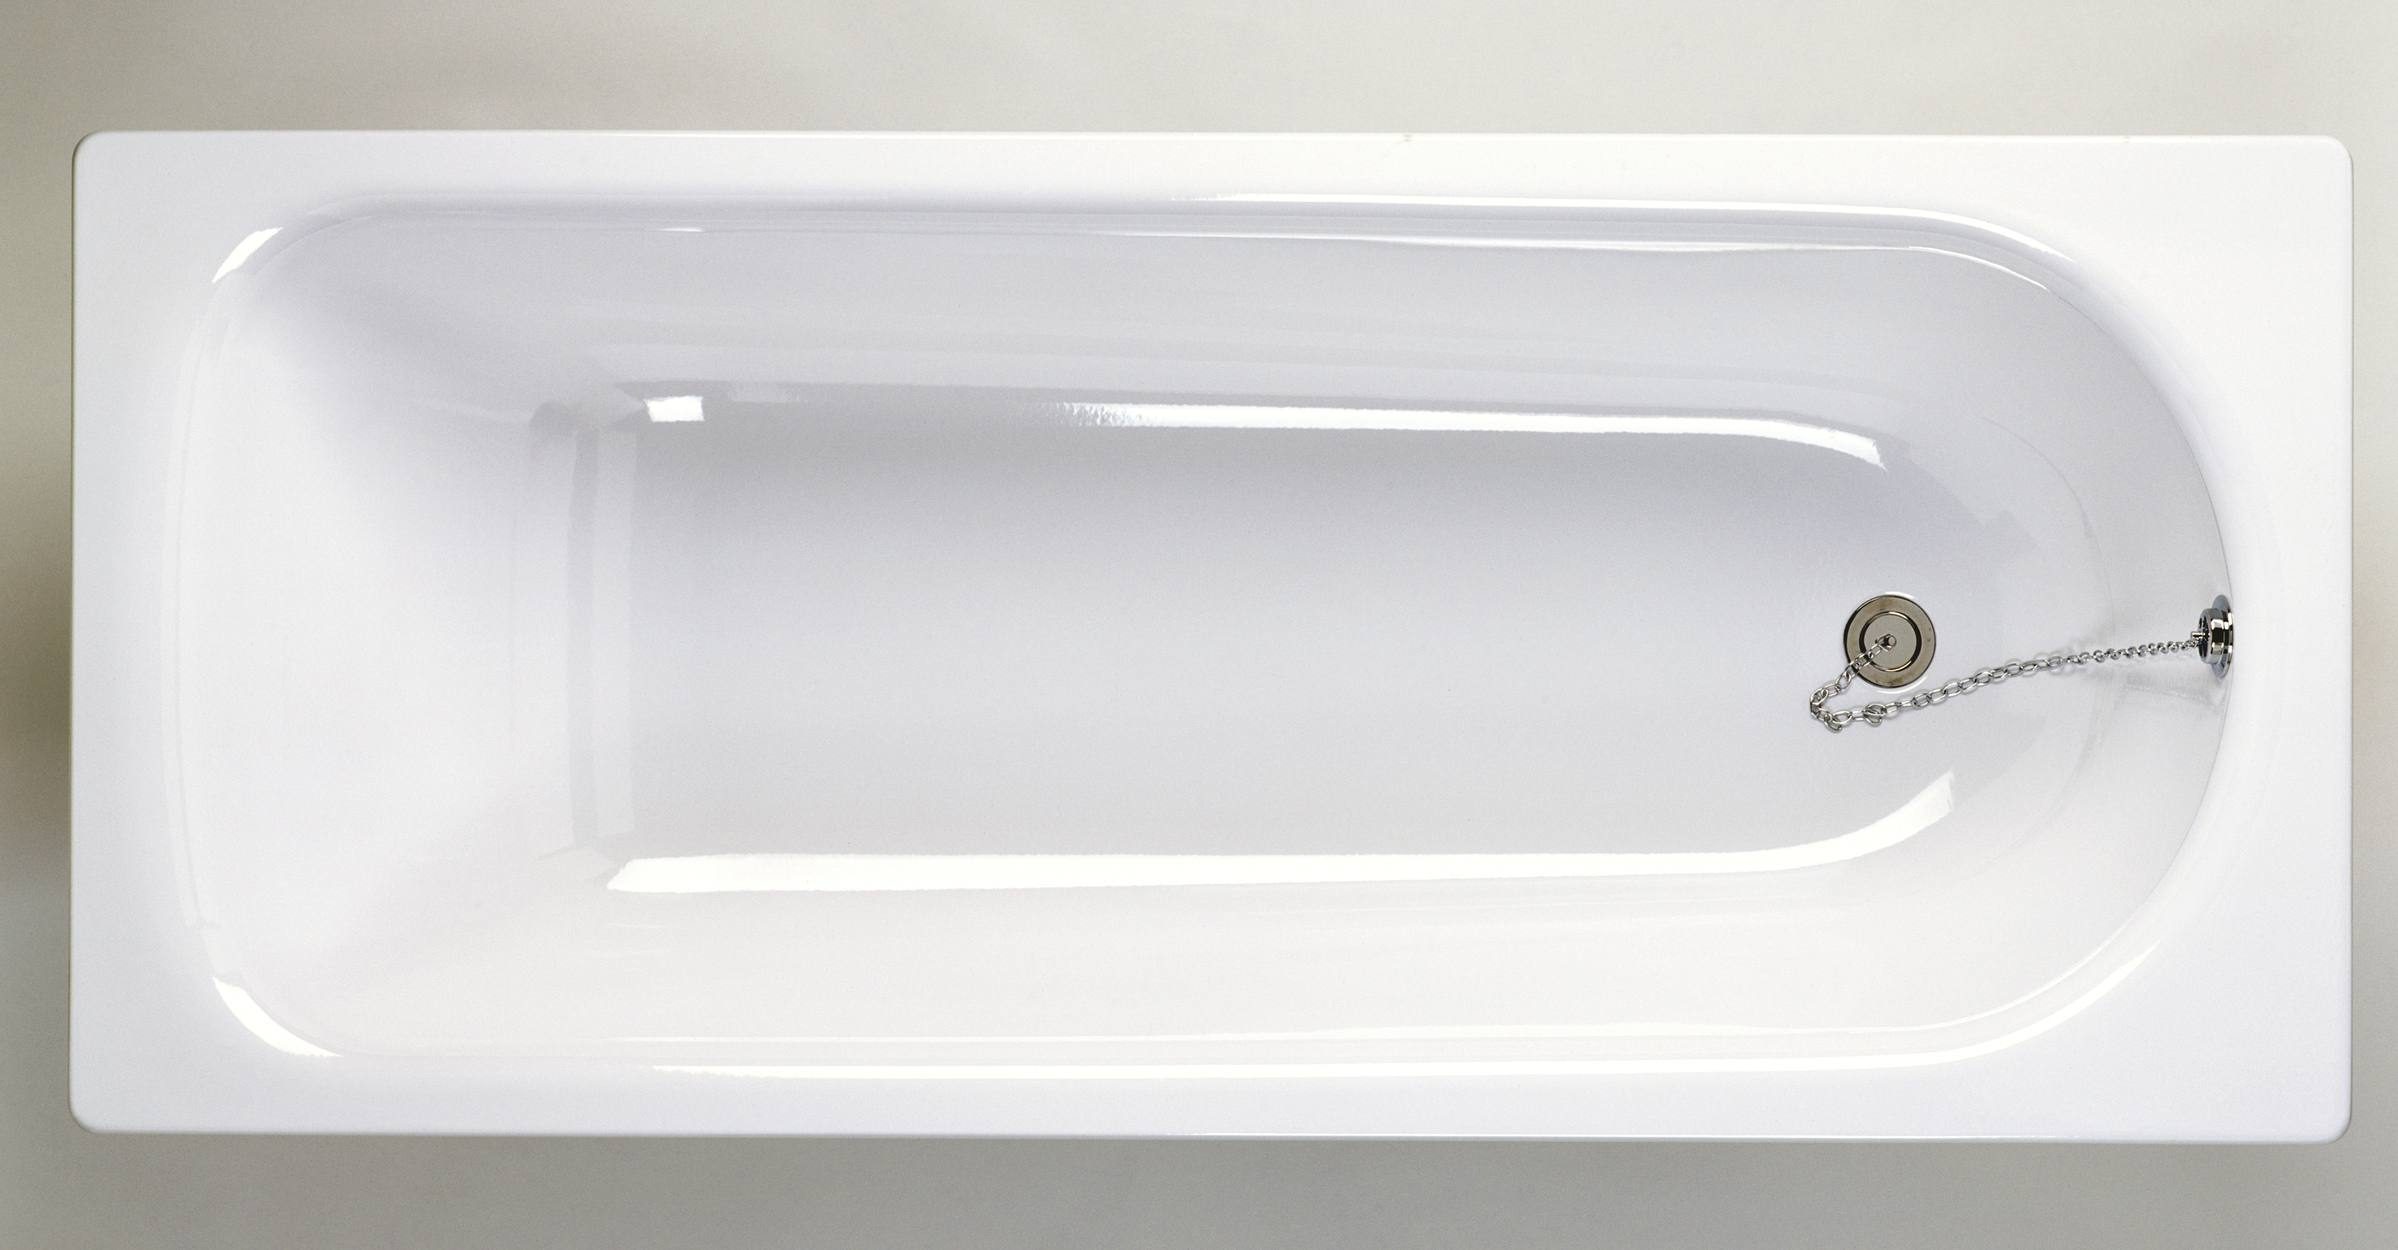 Five Common Materials Used in Bathtubs